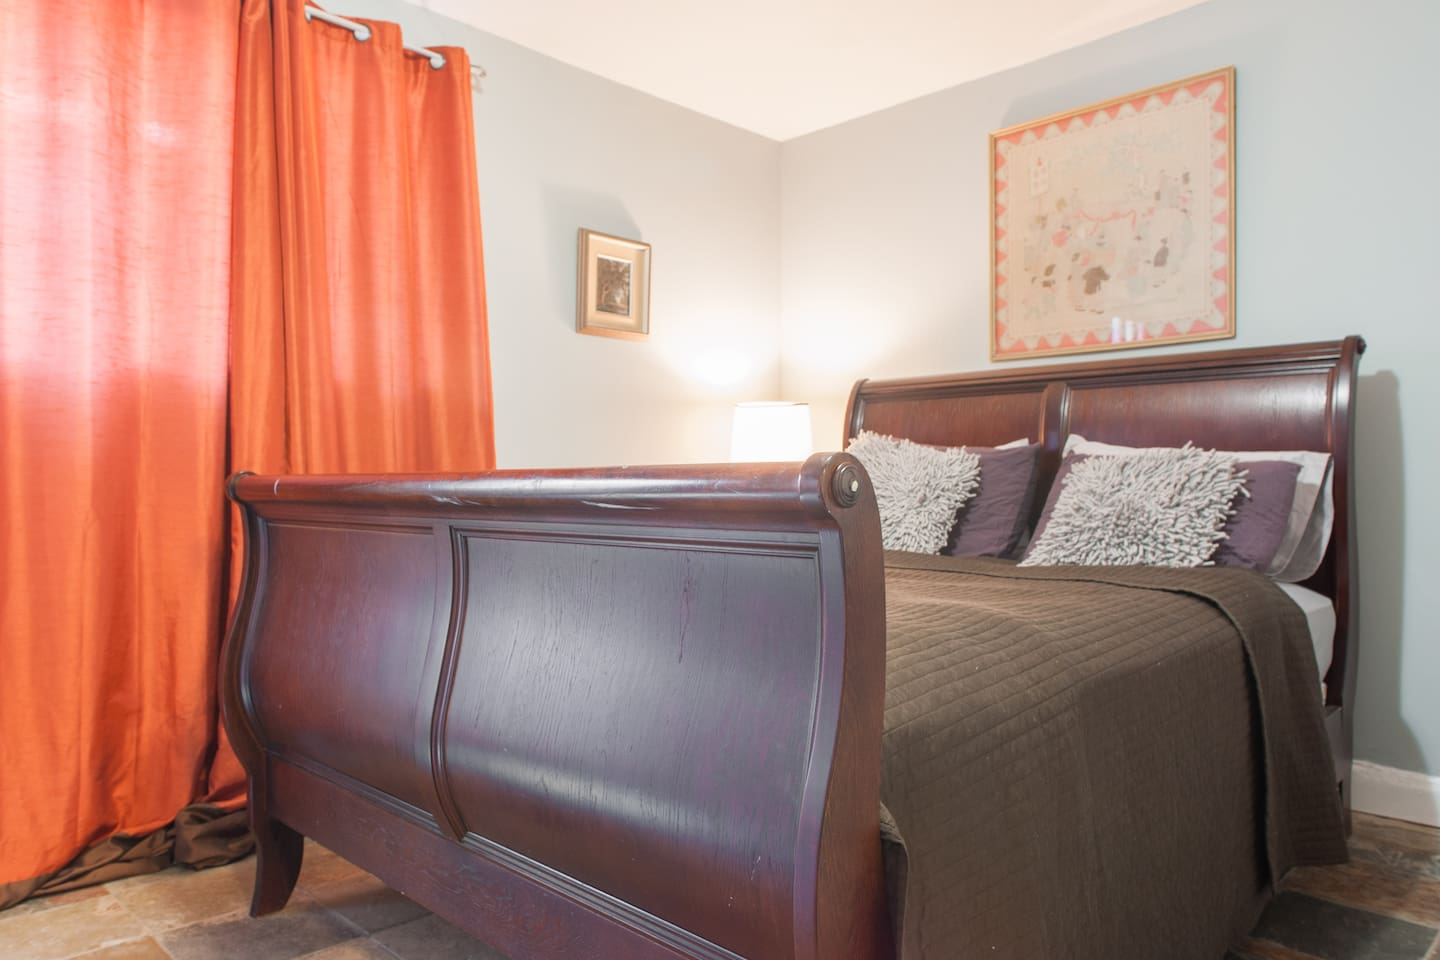 Queen sleigh bed for a great night's sleep.